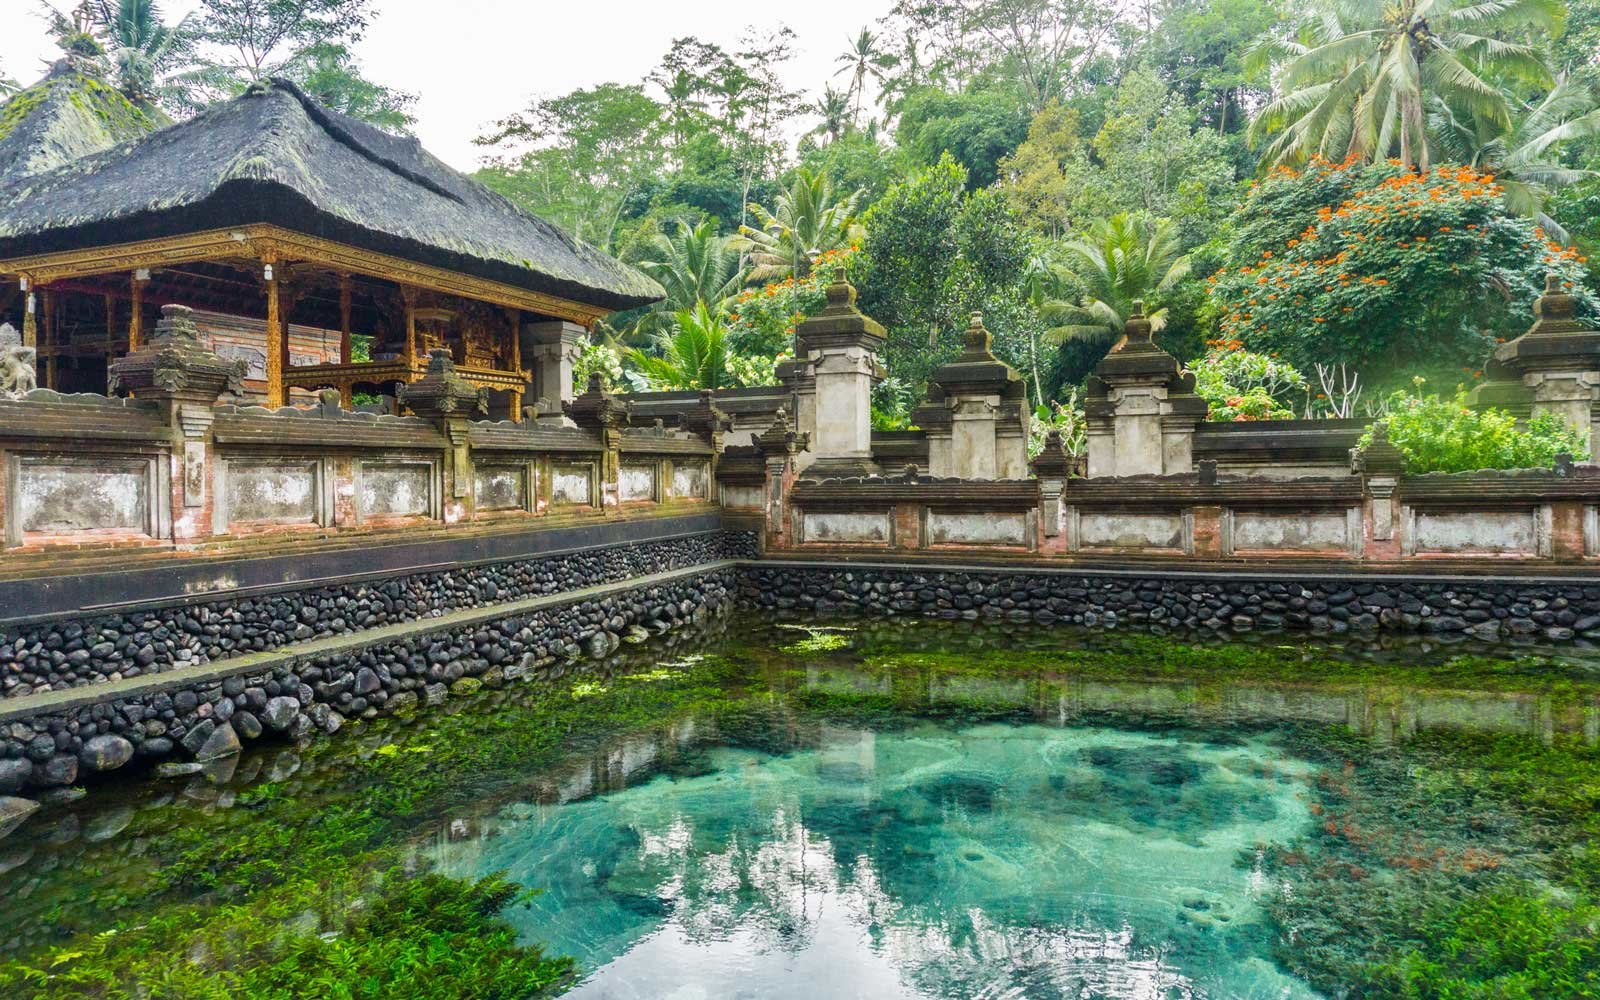 Holy Spring Water Temple (Pura Tirta Empul), Bali, Indonesia